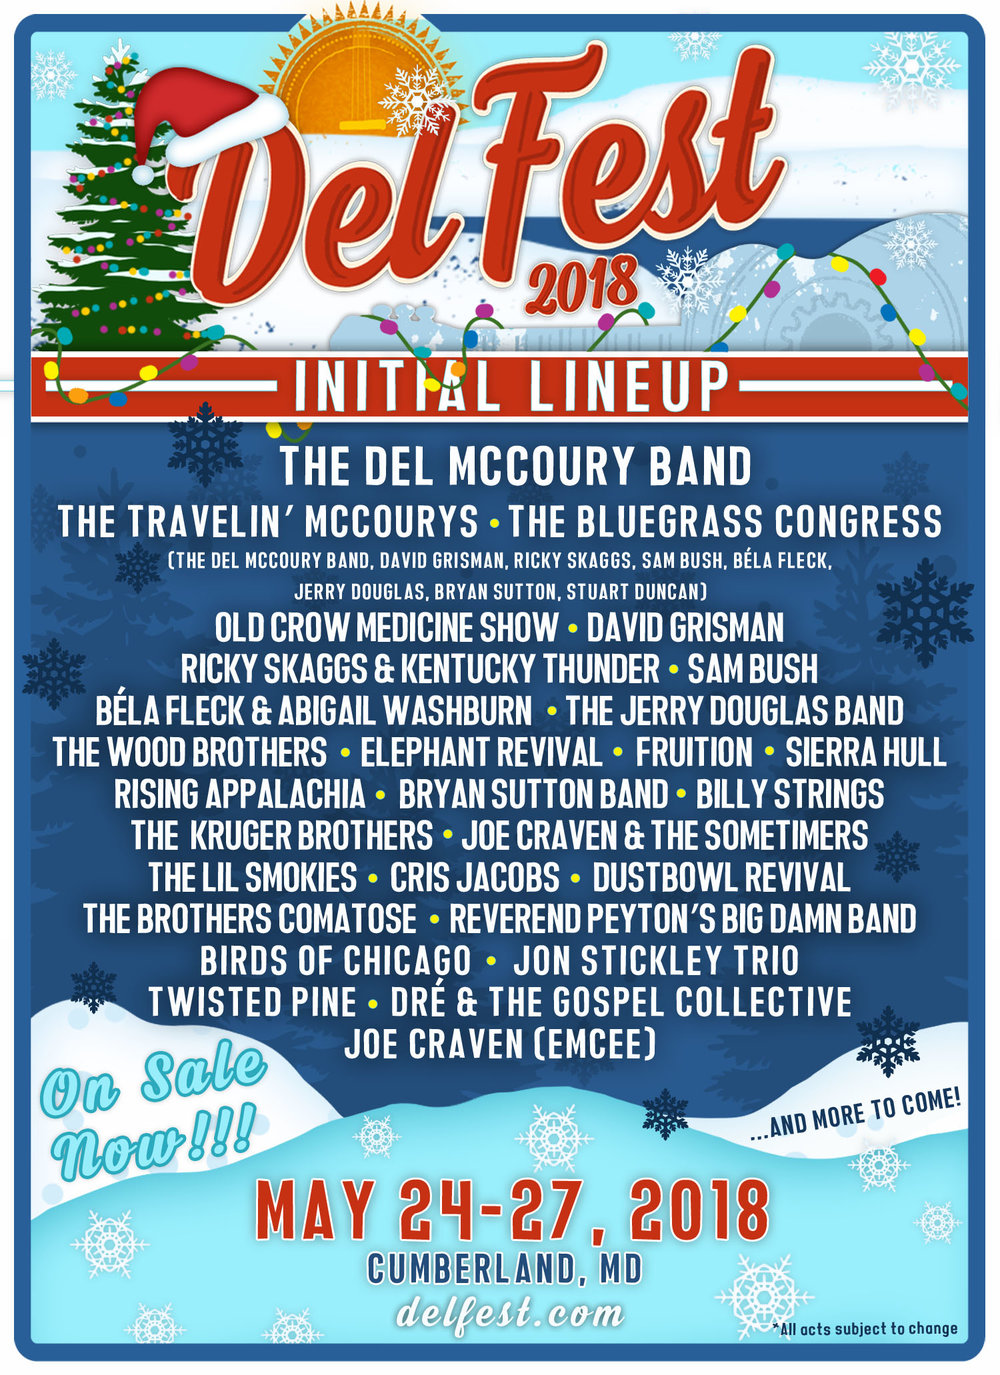 Delfest-Lineup_Winter-Wonderland-1500-pixels-wide.jpg